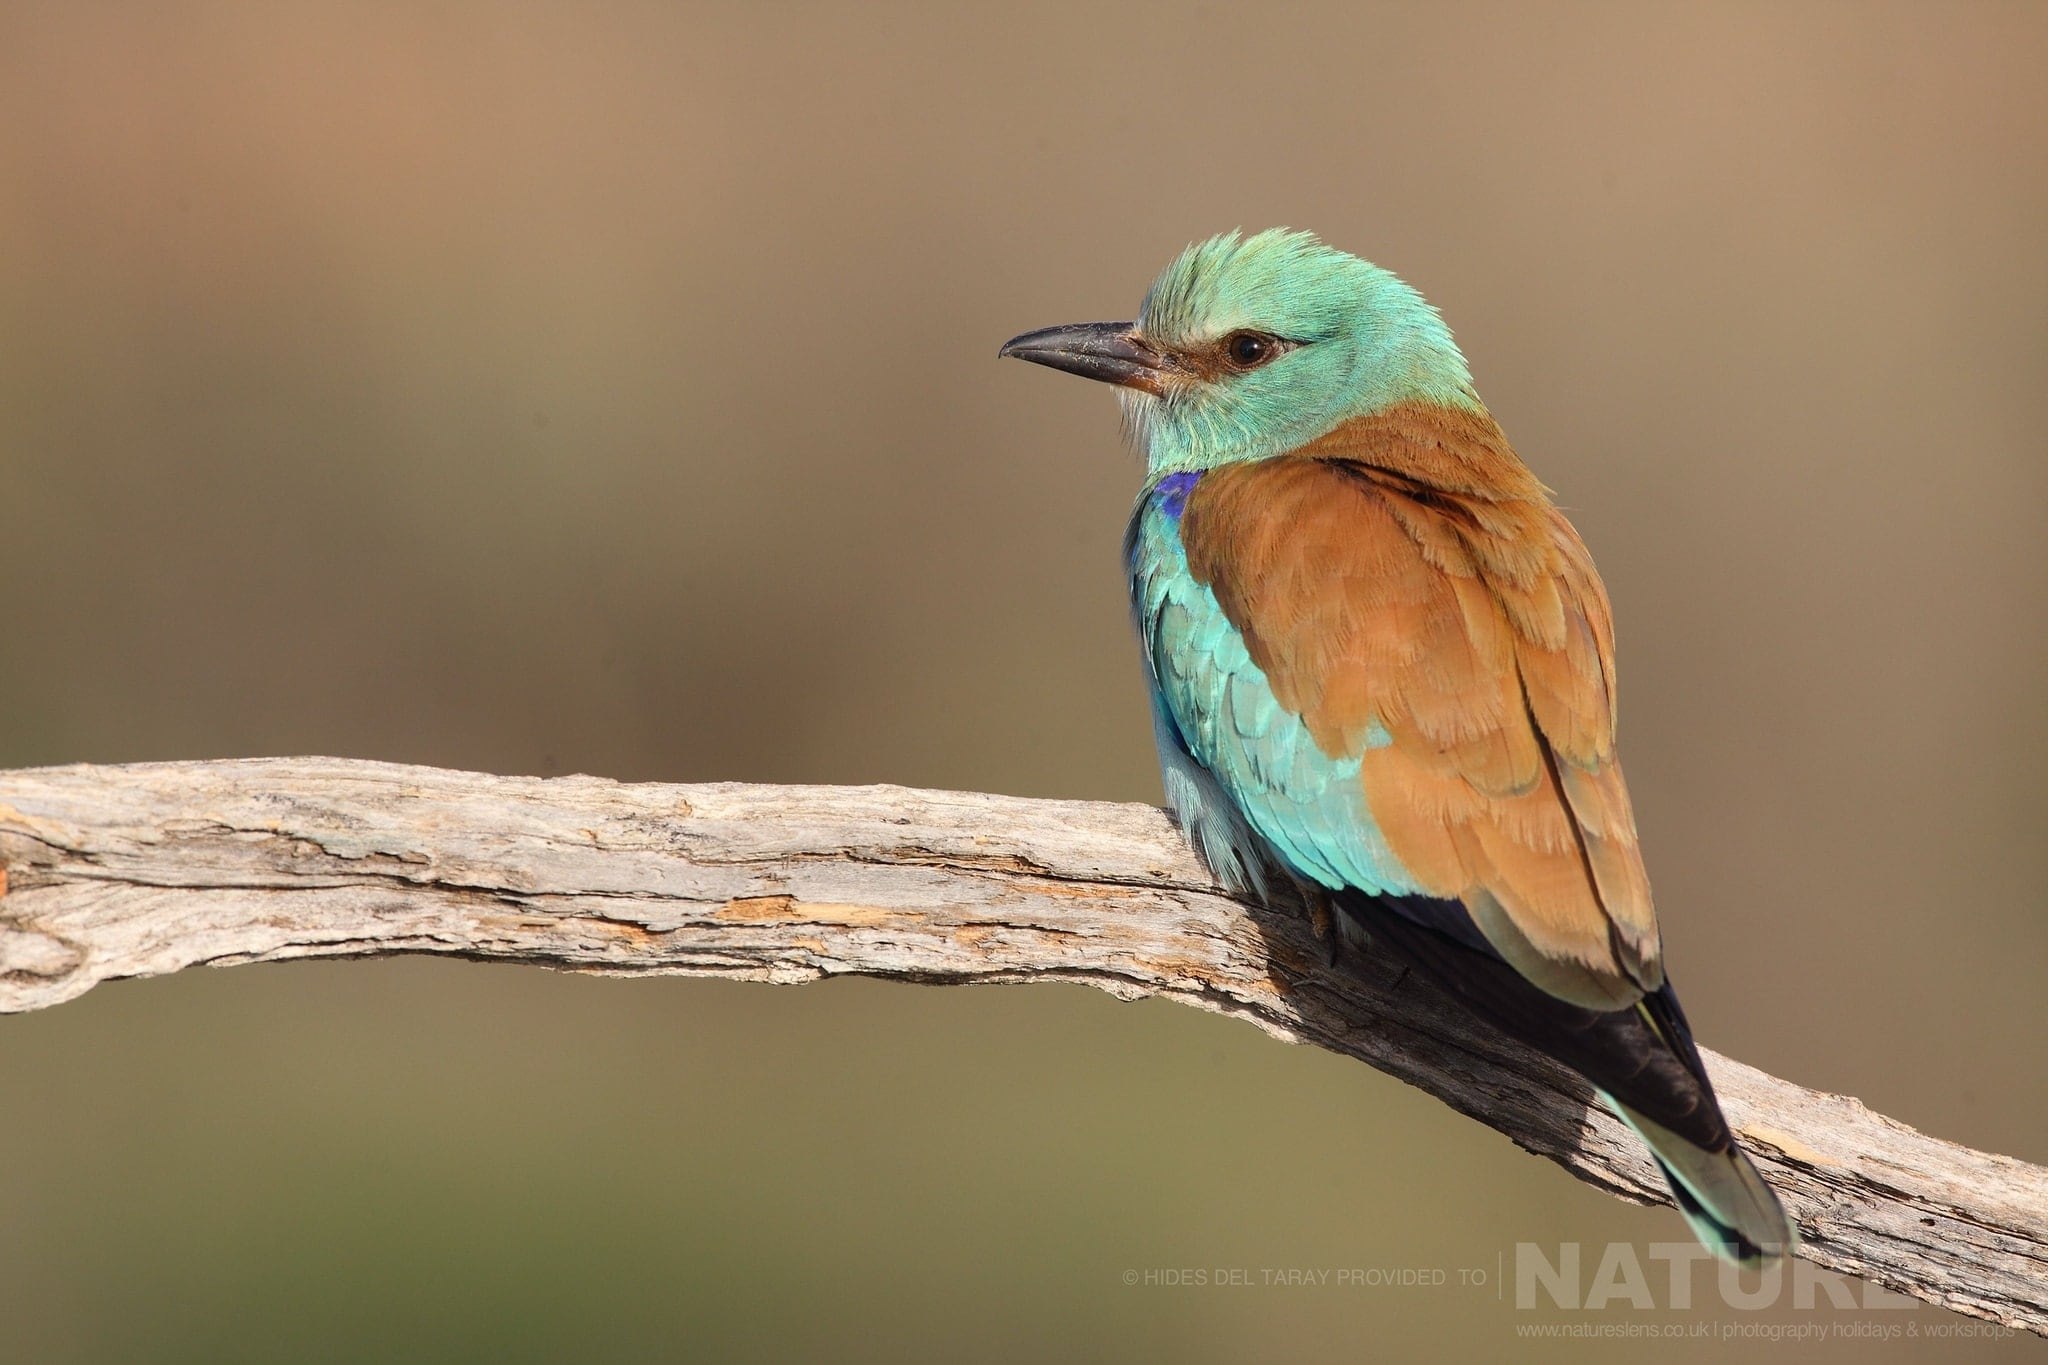 One Of The Colony Of European Rollers   Photographed On The Laguna Del Taray Estate Used For The NaturesLens Spanish Birds Of Toledo Photography Holiday